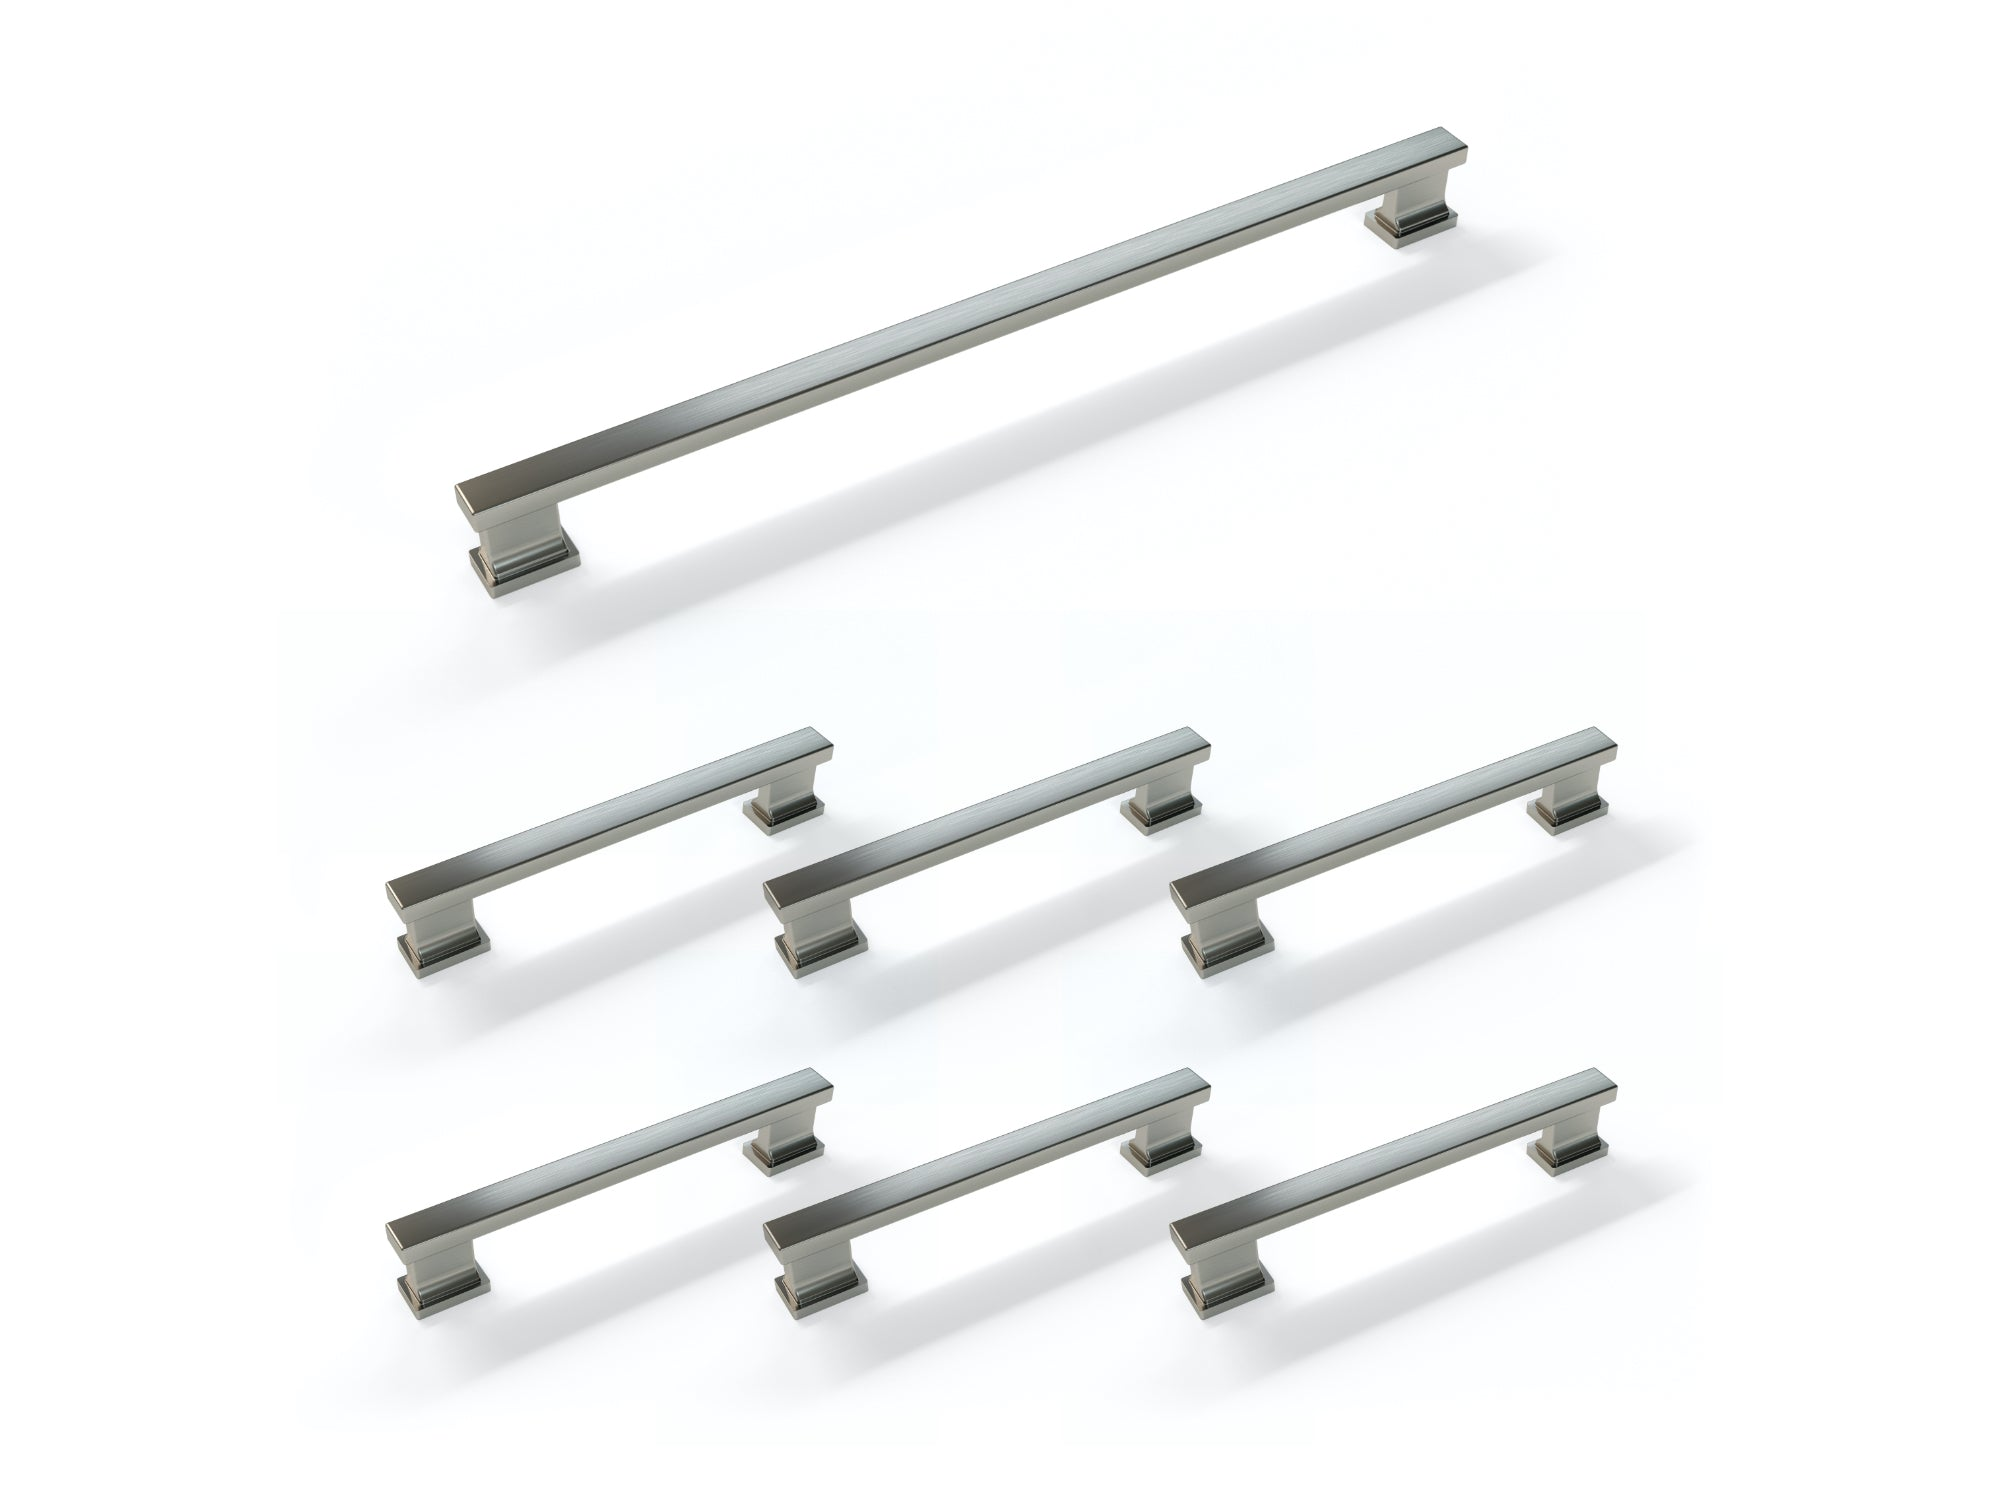 Contemporary Style Handle Pack (6 x Small Handle, 1 x Large Handle)